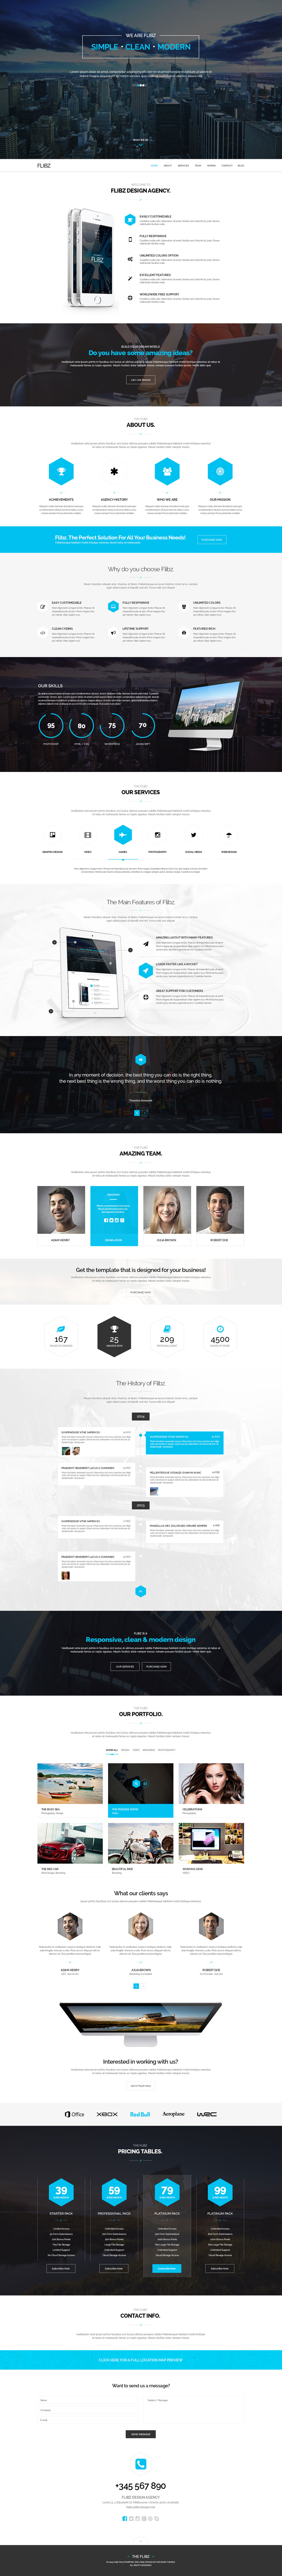 Flibz - One Page Parallax HTML5 Template - 1